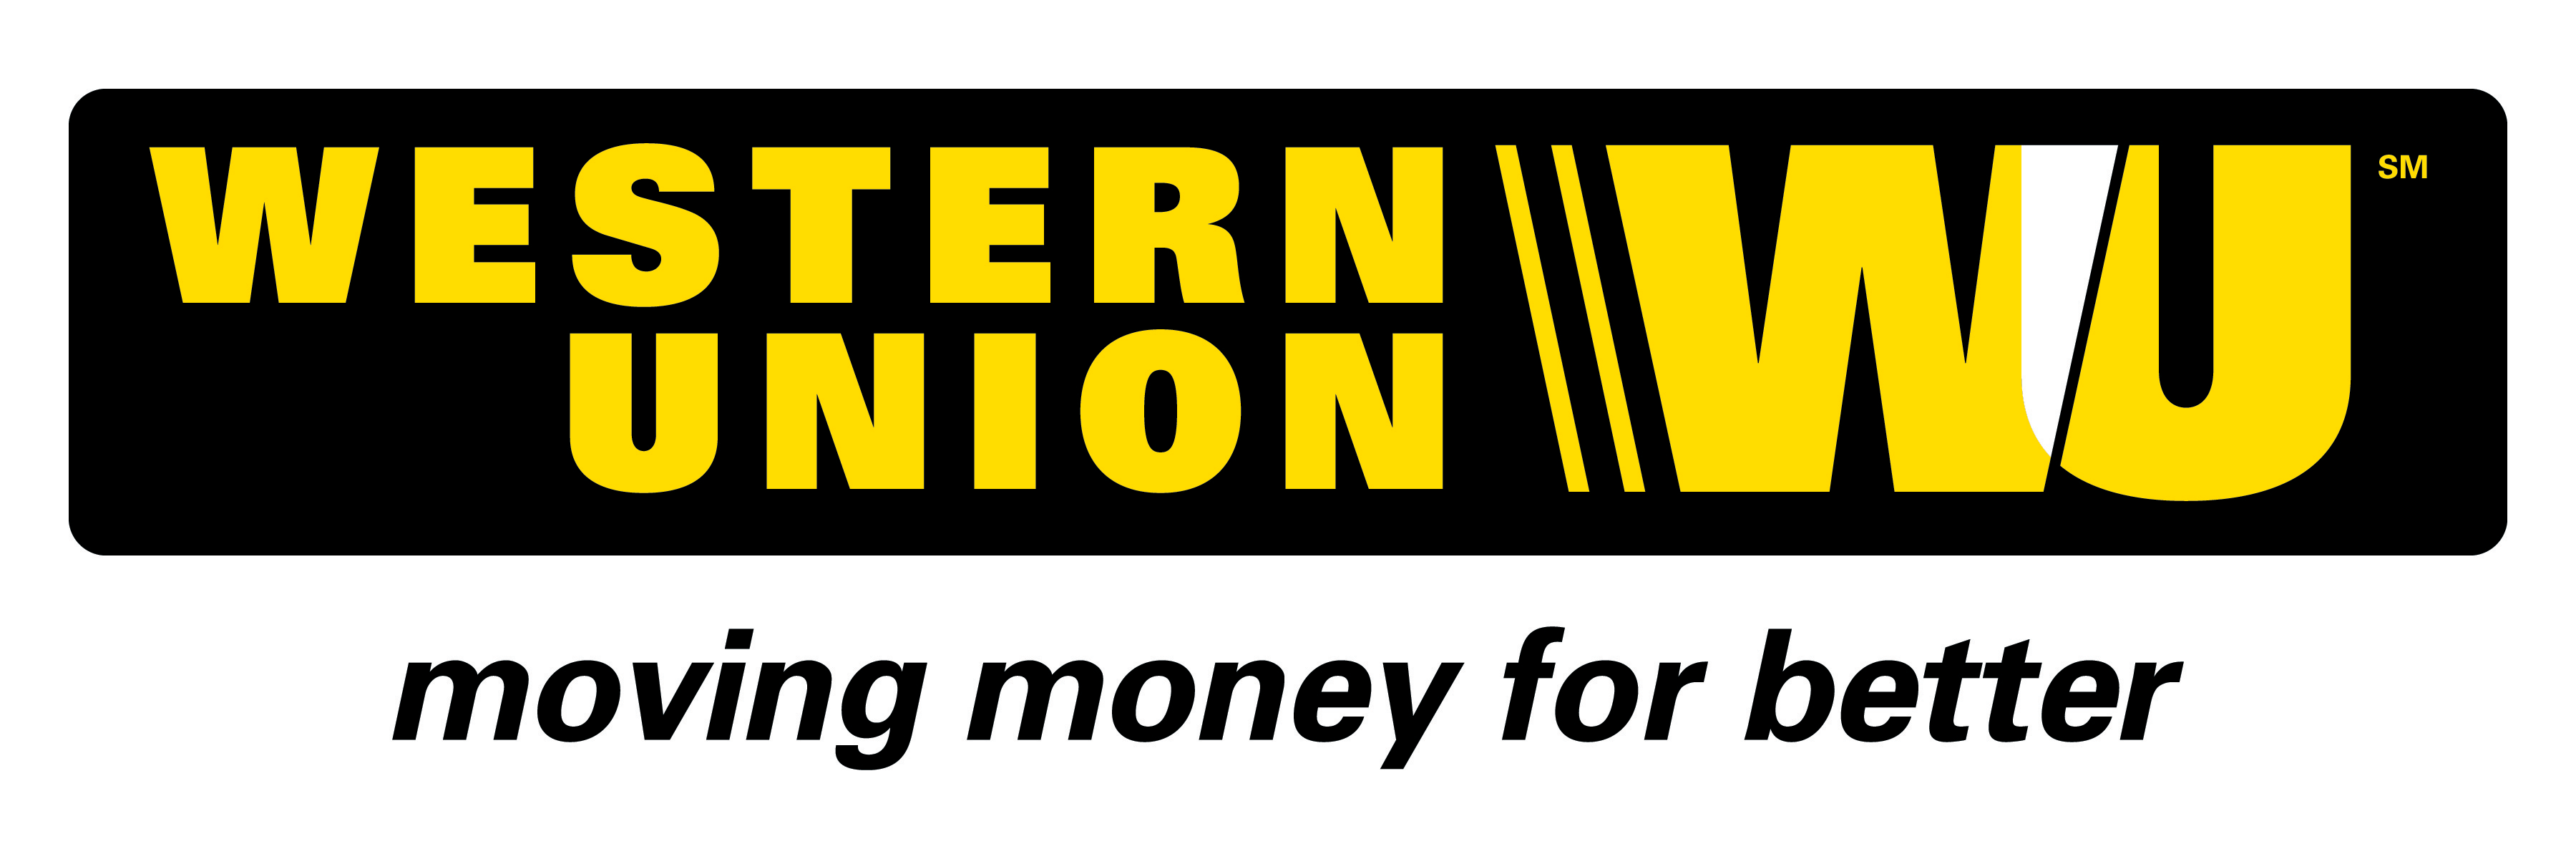 Western Union Announces Digital Enhancements Benefitting Both C2C and B2B Customers